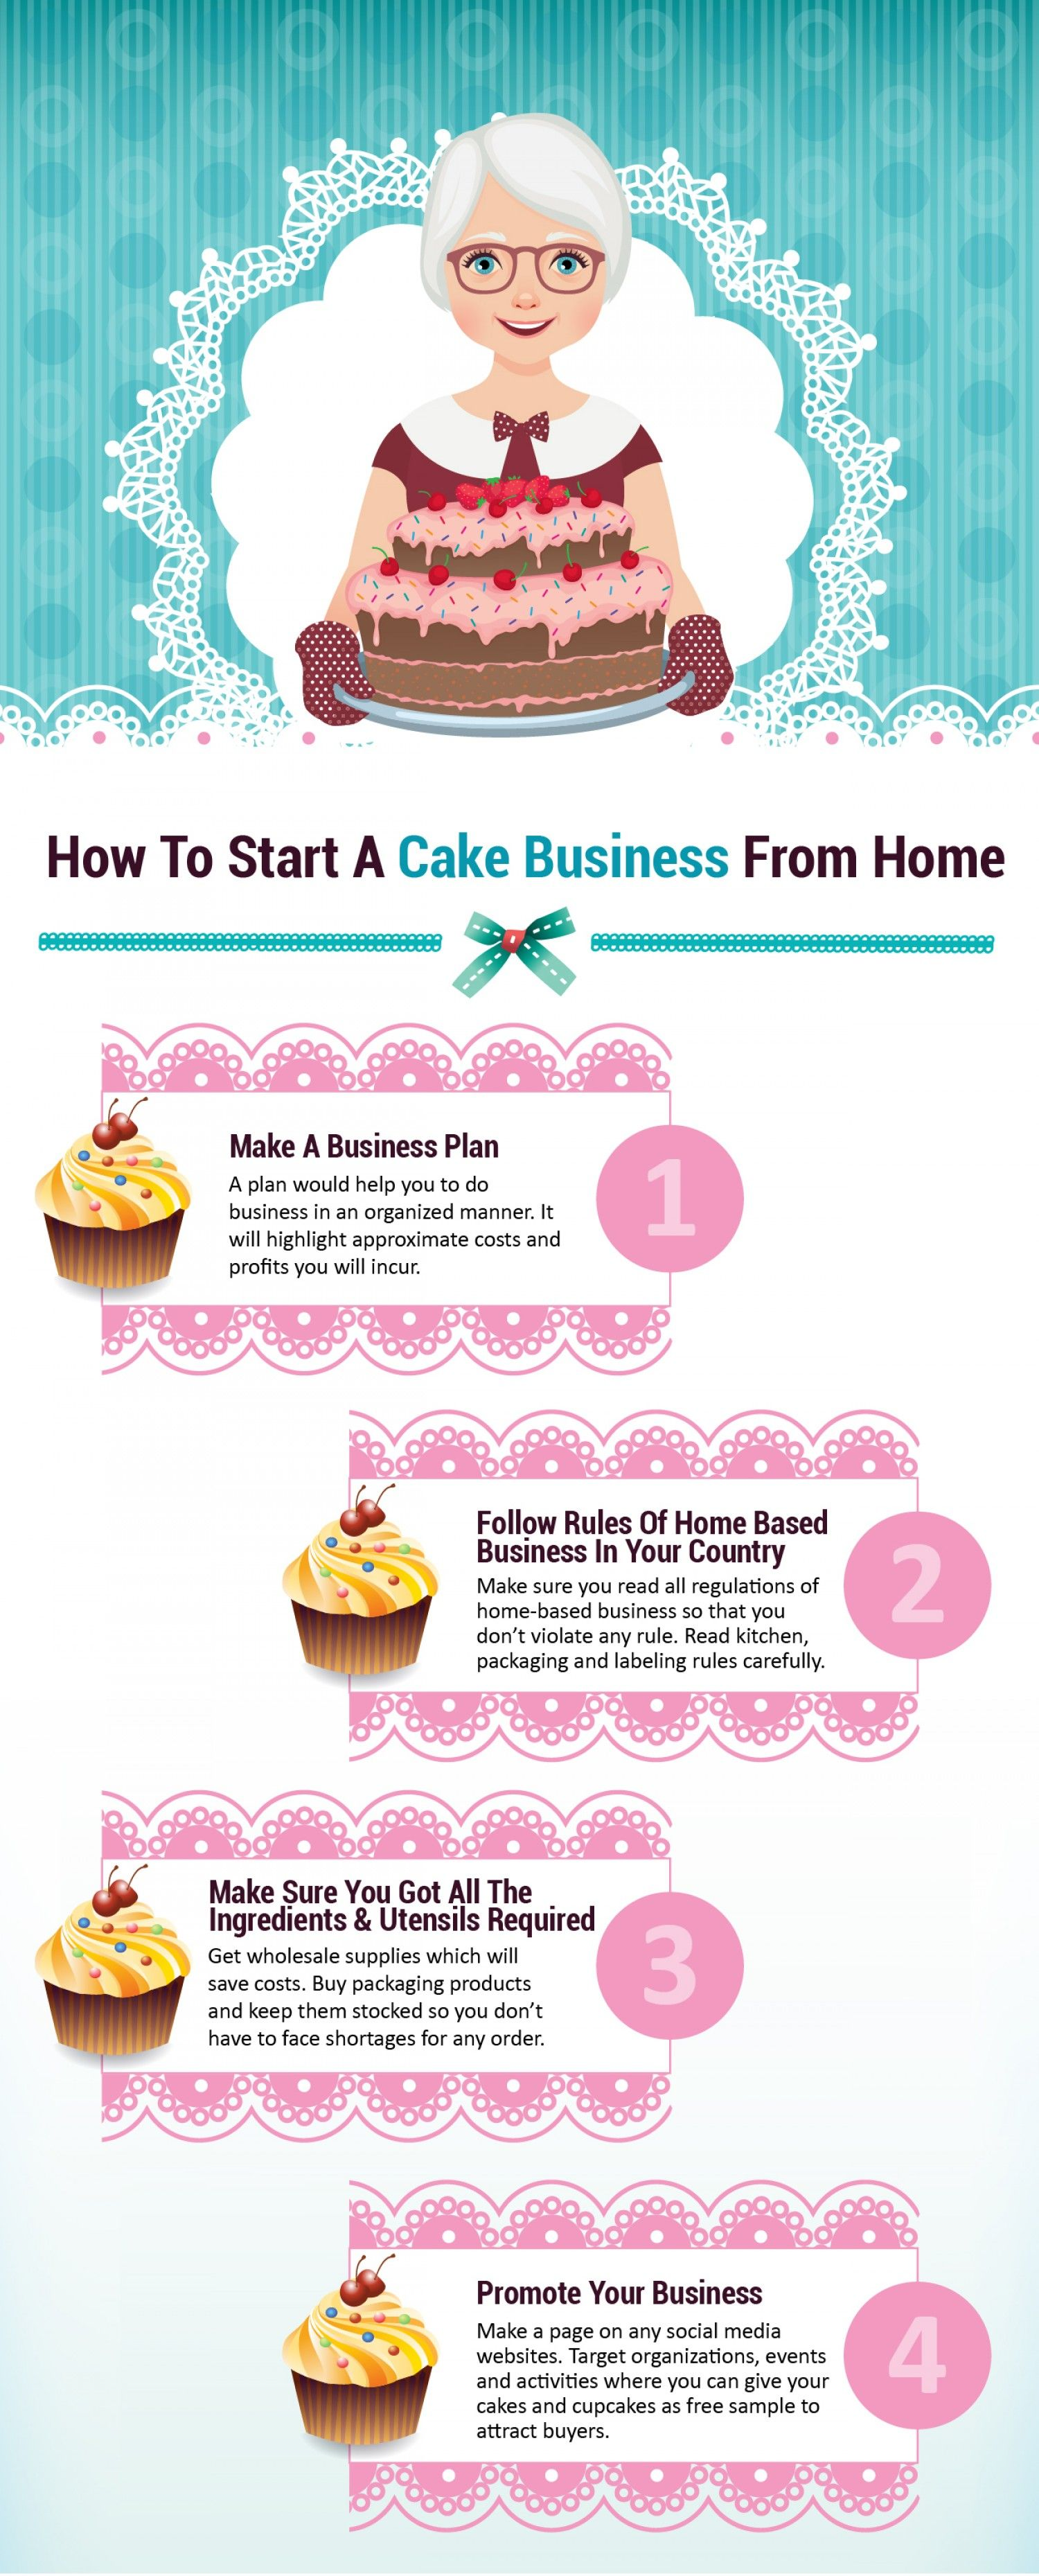 31 Catchy and Cute Cake and Cupcake Business Names | Biz Junky ...